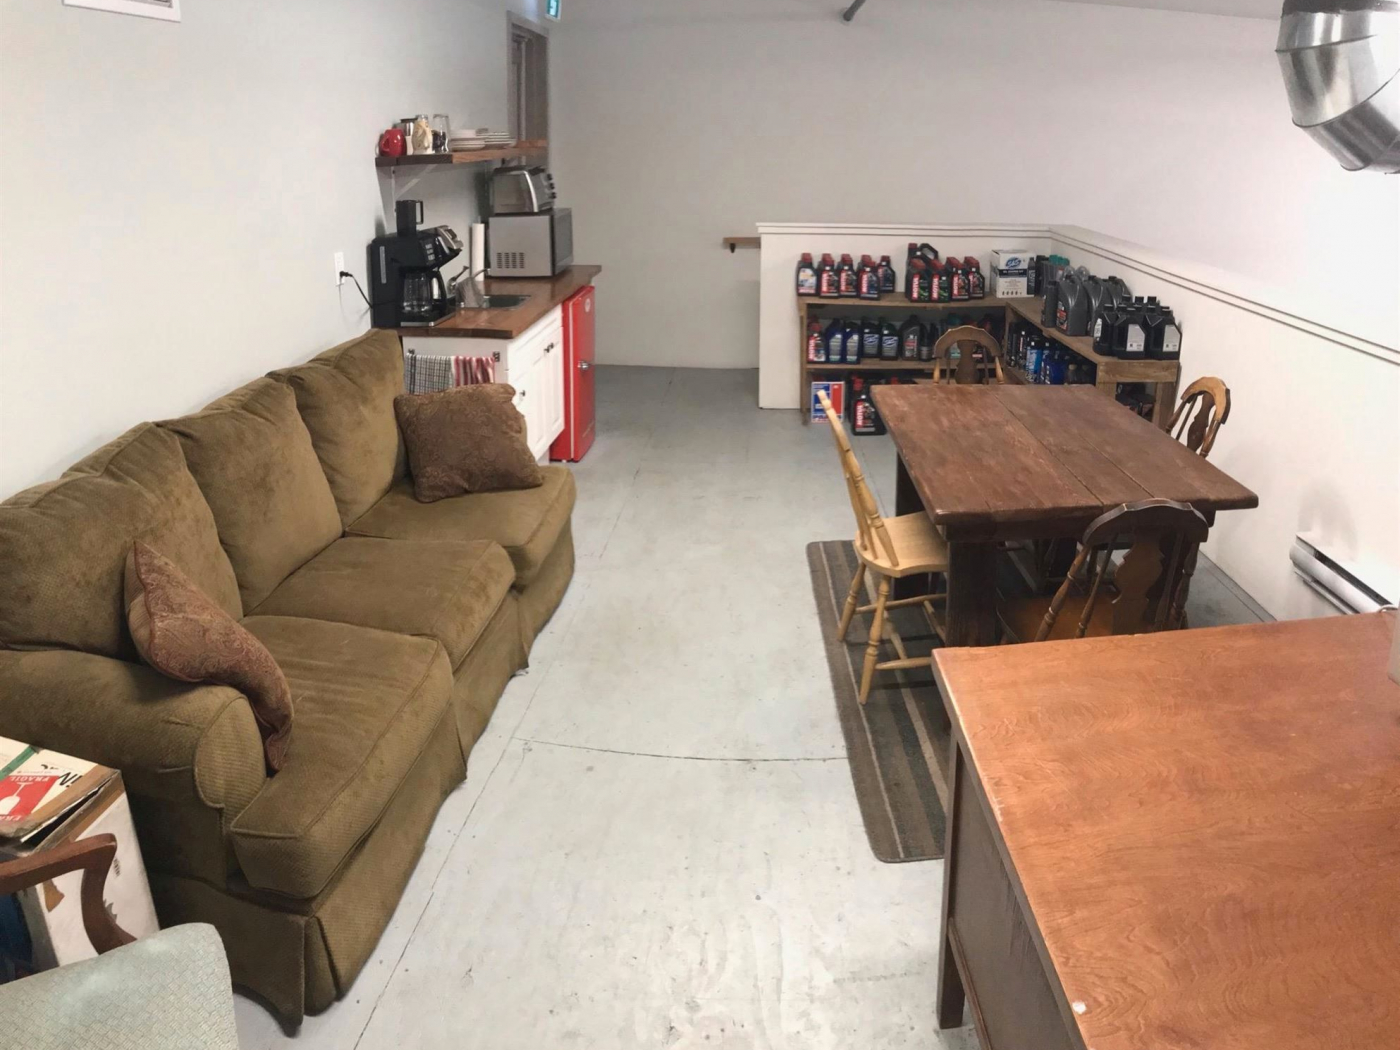 Motorcycle Repair Shop is a business for sale in BC.